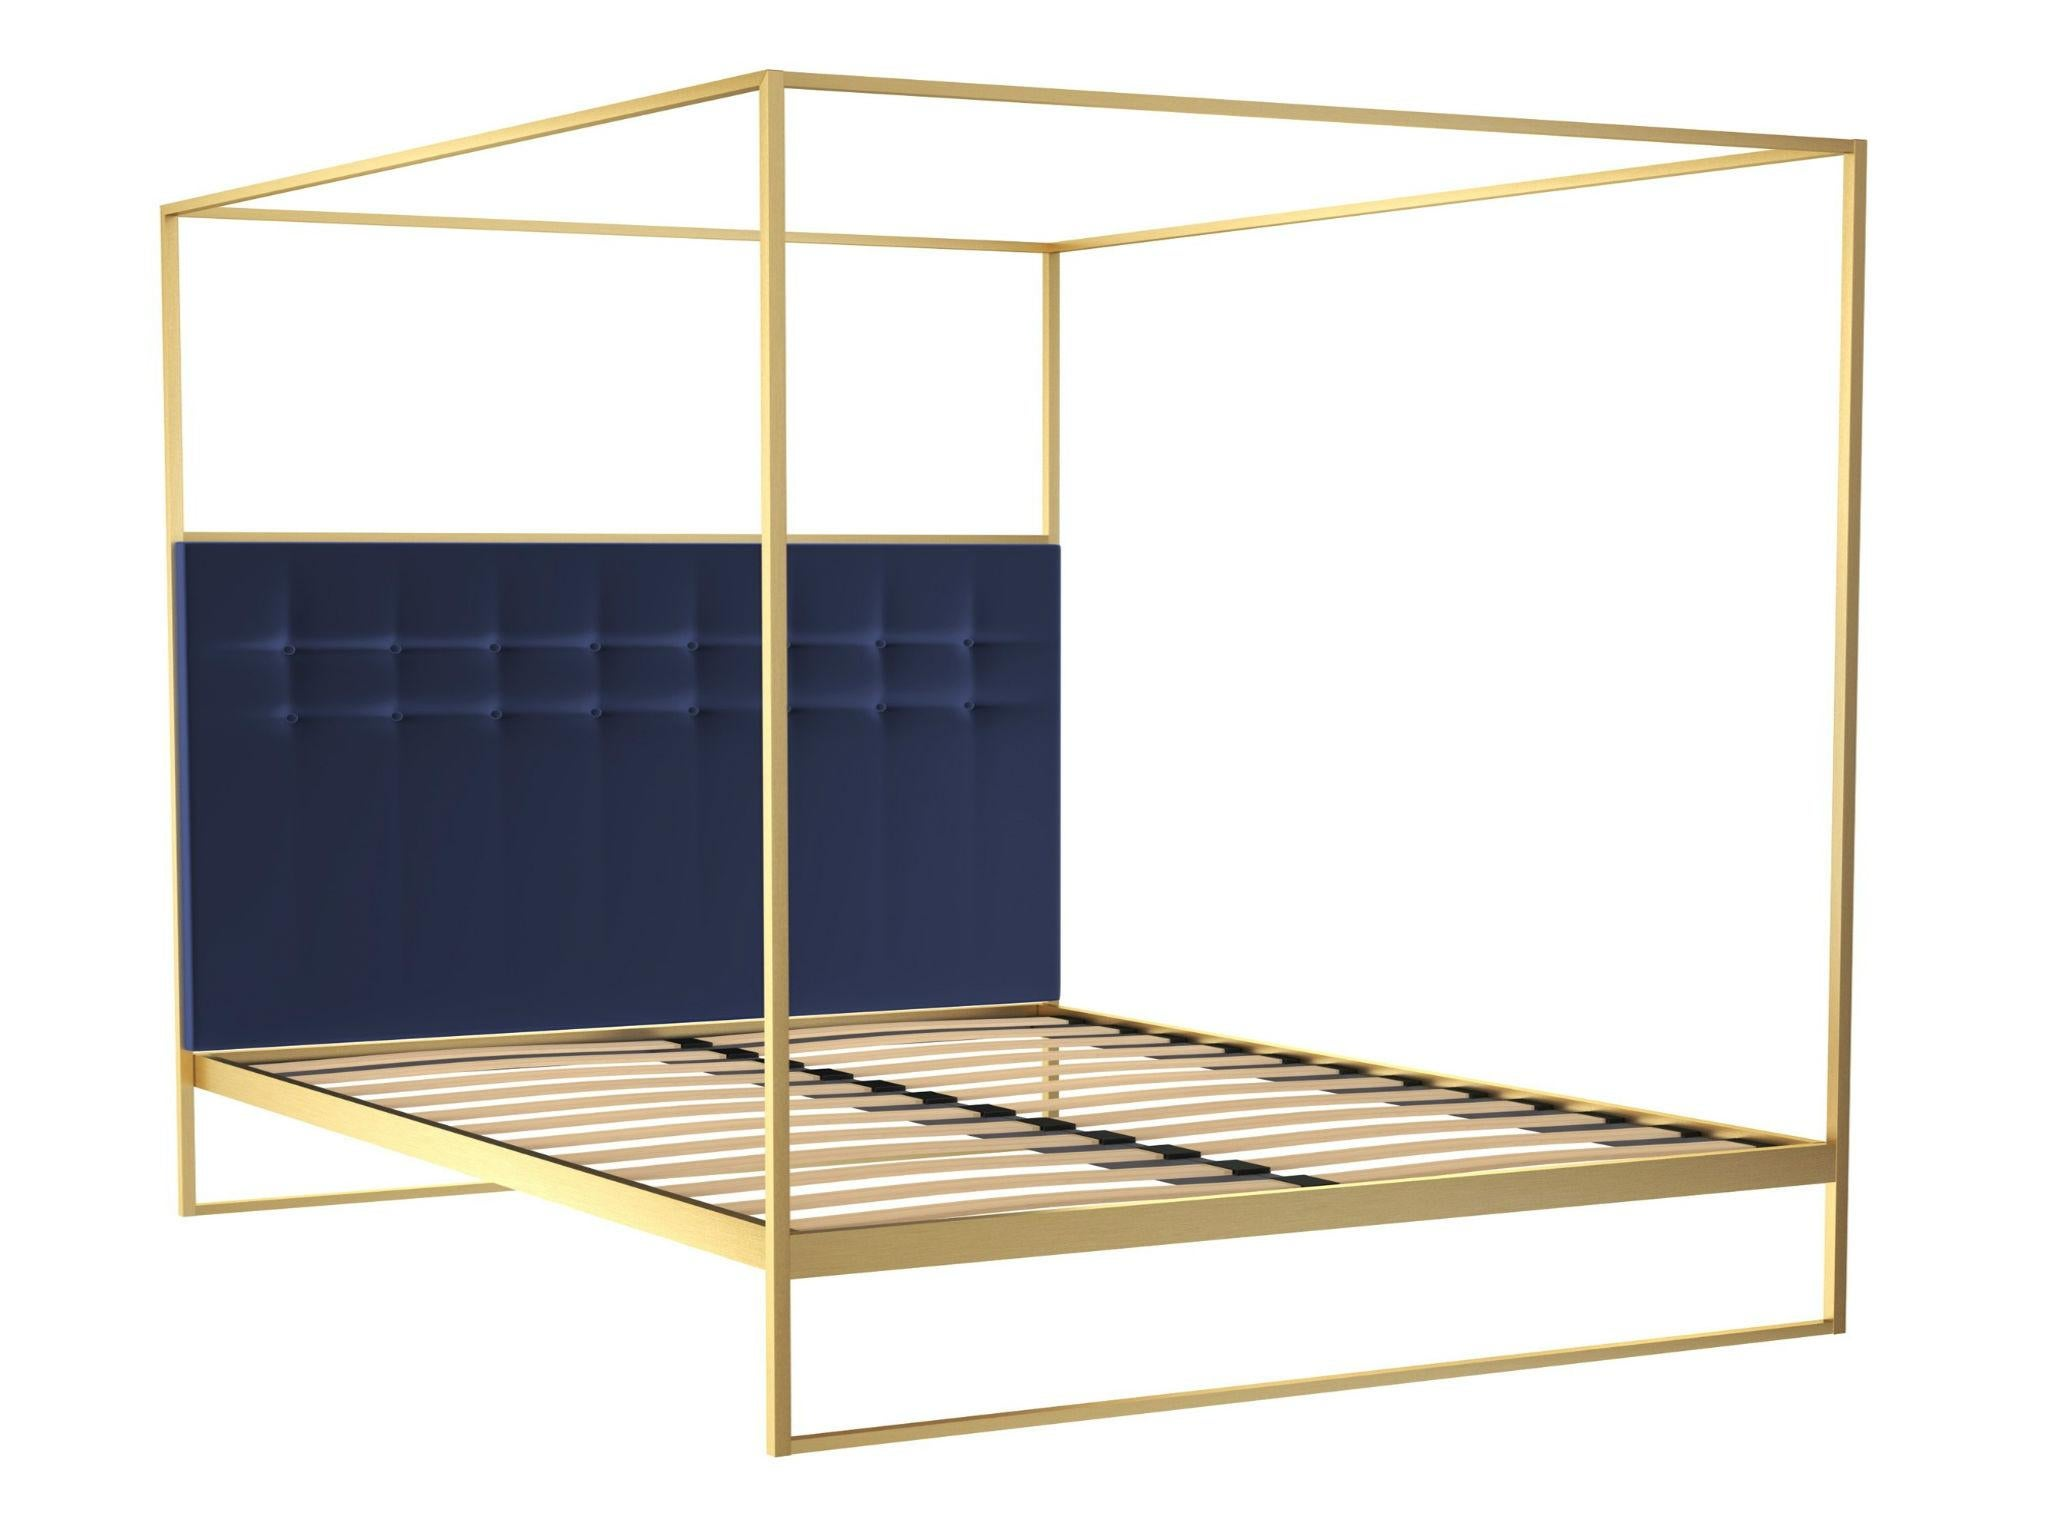 Gold Frame Double Canopy Bed With Blue Headboard 1,565, Out